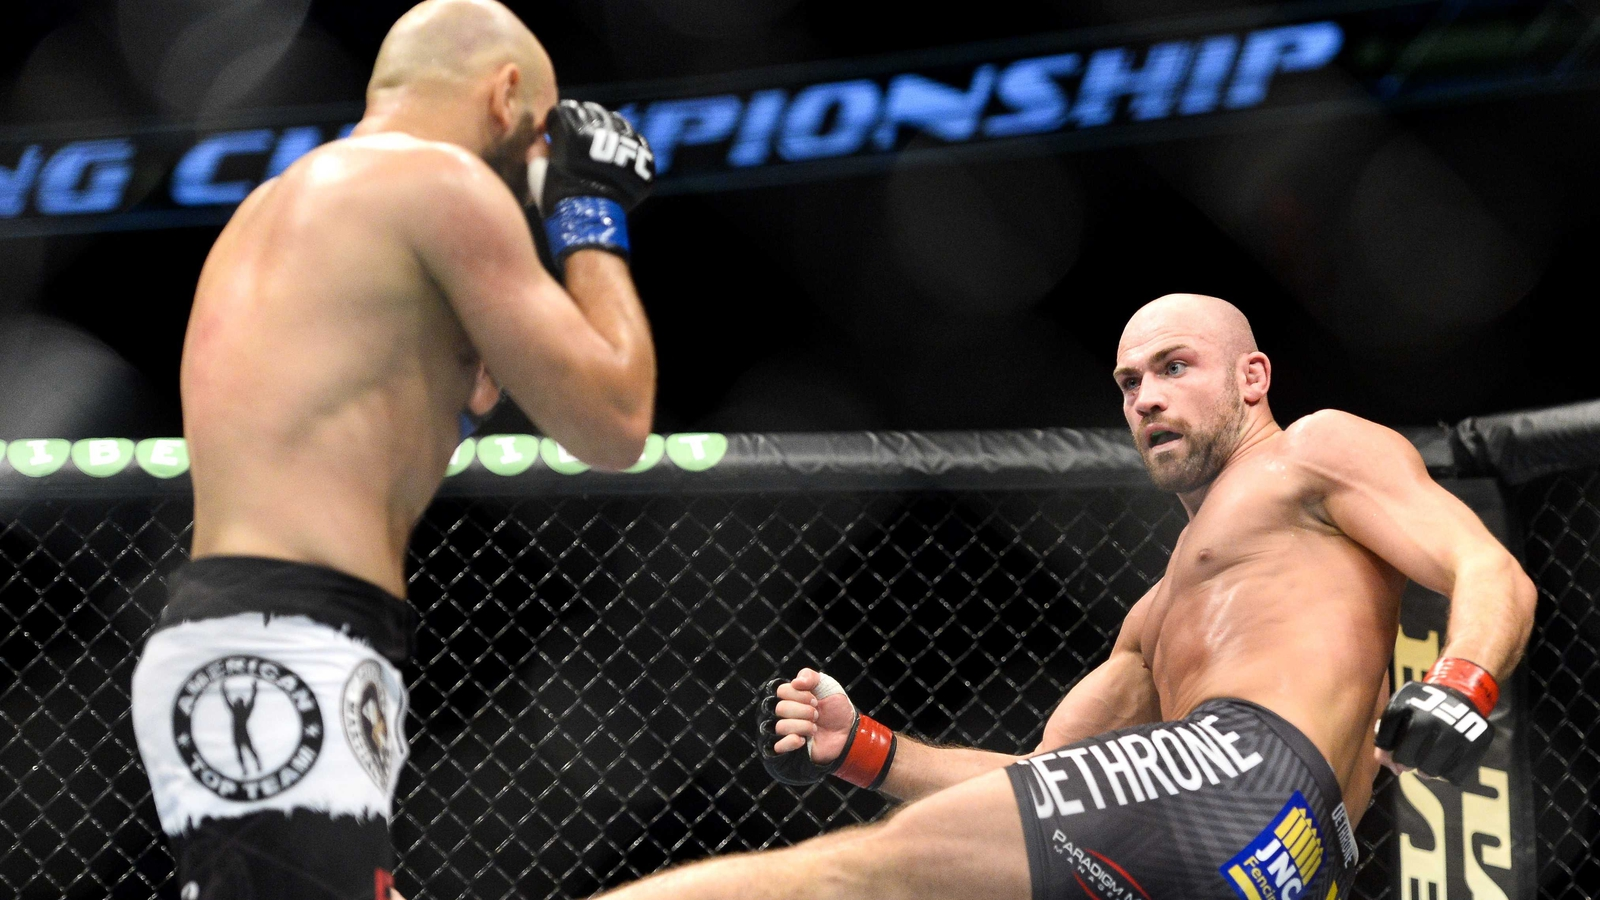 Life for Pendred after going 2&0 in the UFC